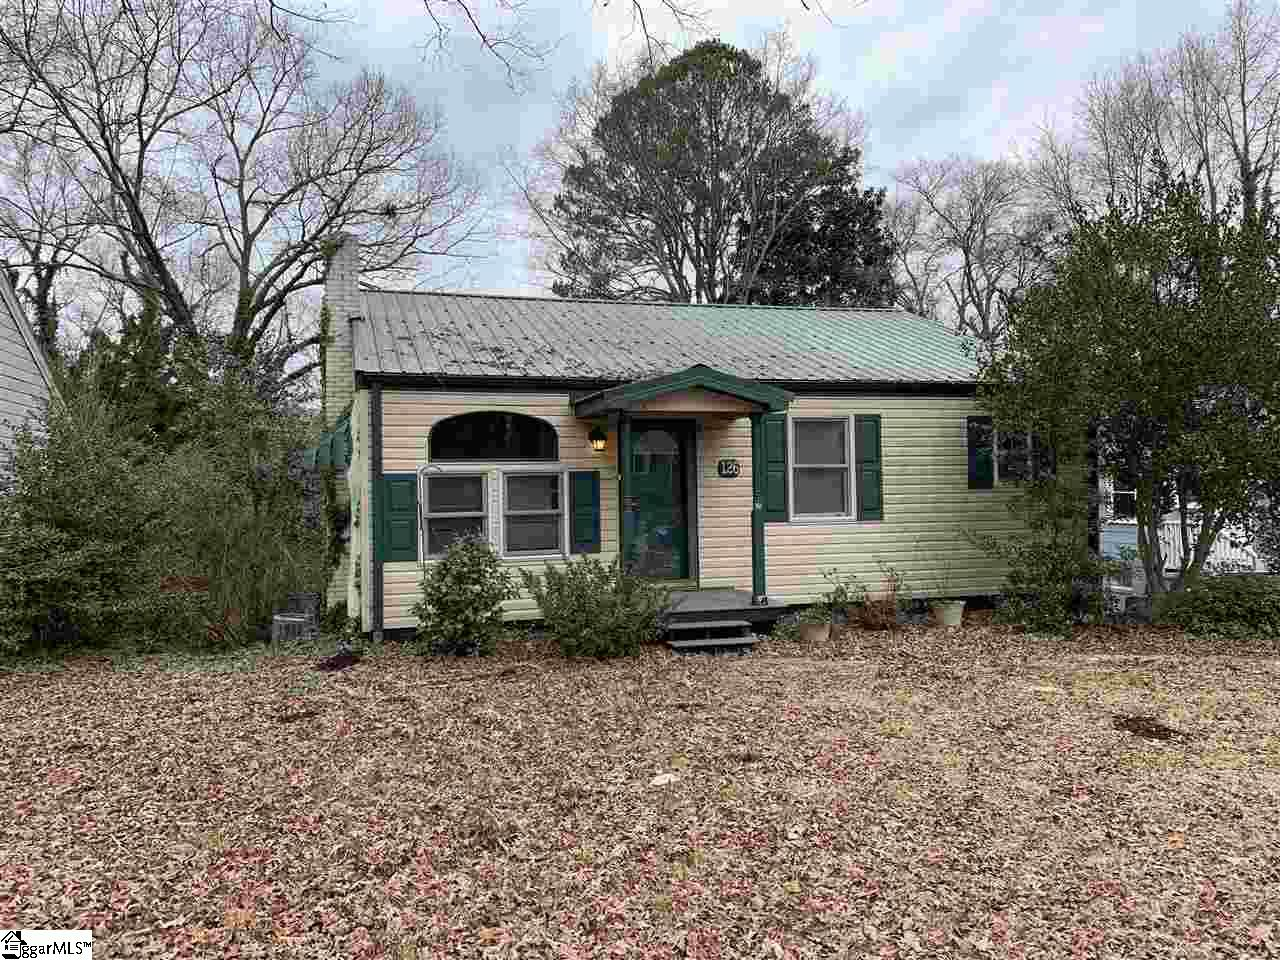 126 White Oak Road, Spartanburg, South Carolina 29301, 3 Bedrooms Bedrooms, ,1 BathroomBathrooms,Single Family (Detached),For Sale,White Oak,1411812